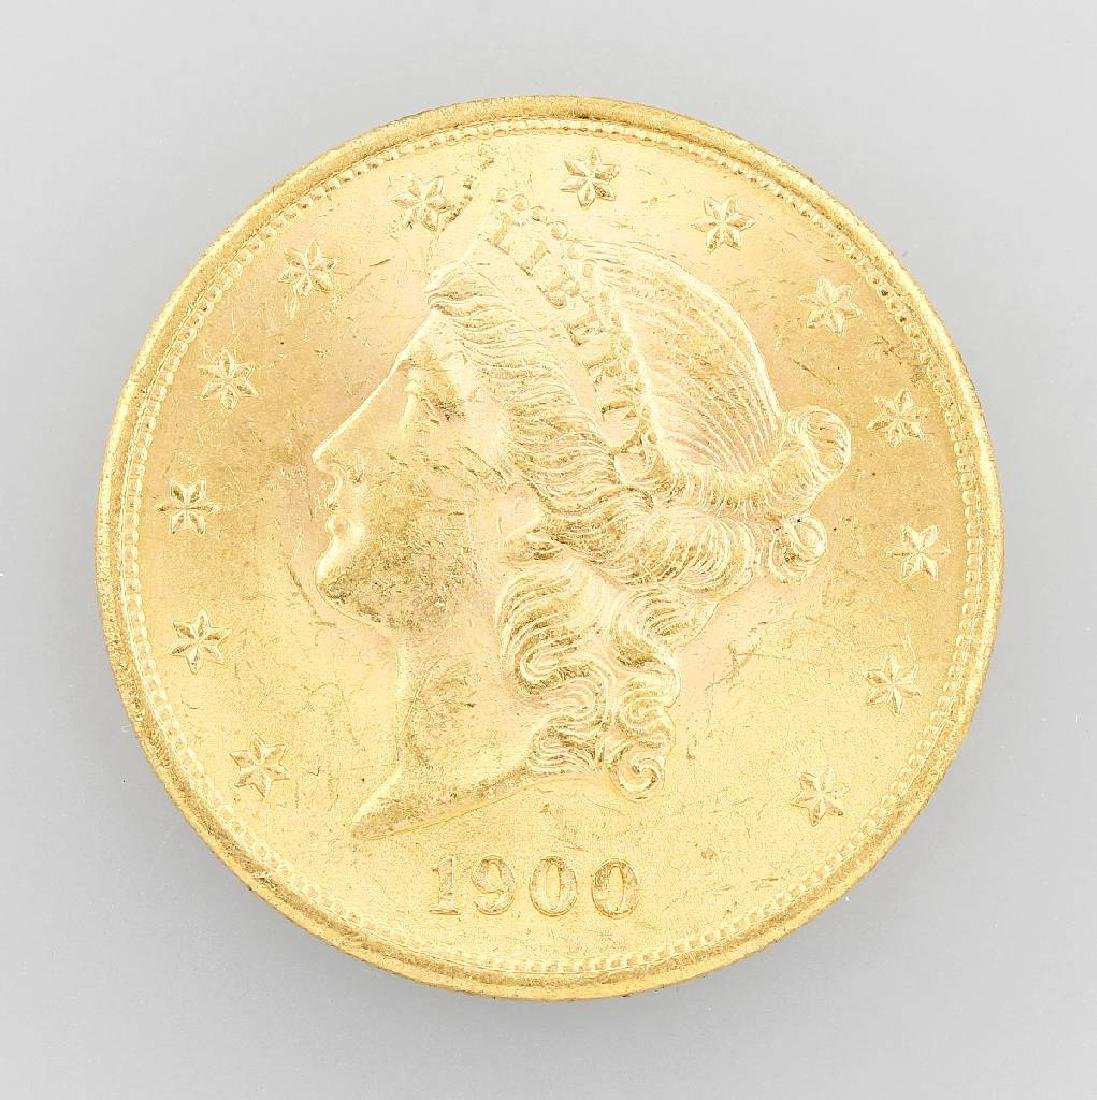 Gold coin, 20 Dollars, USA, 1900